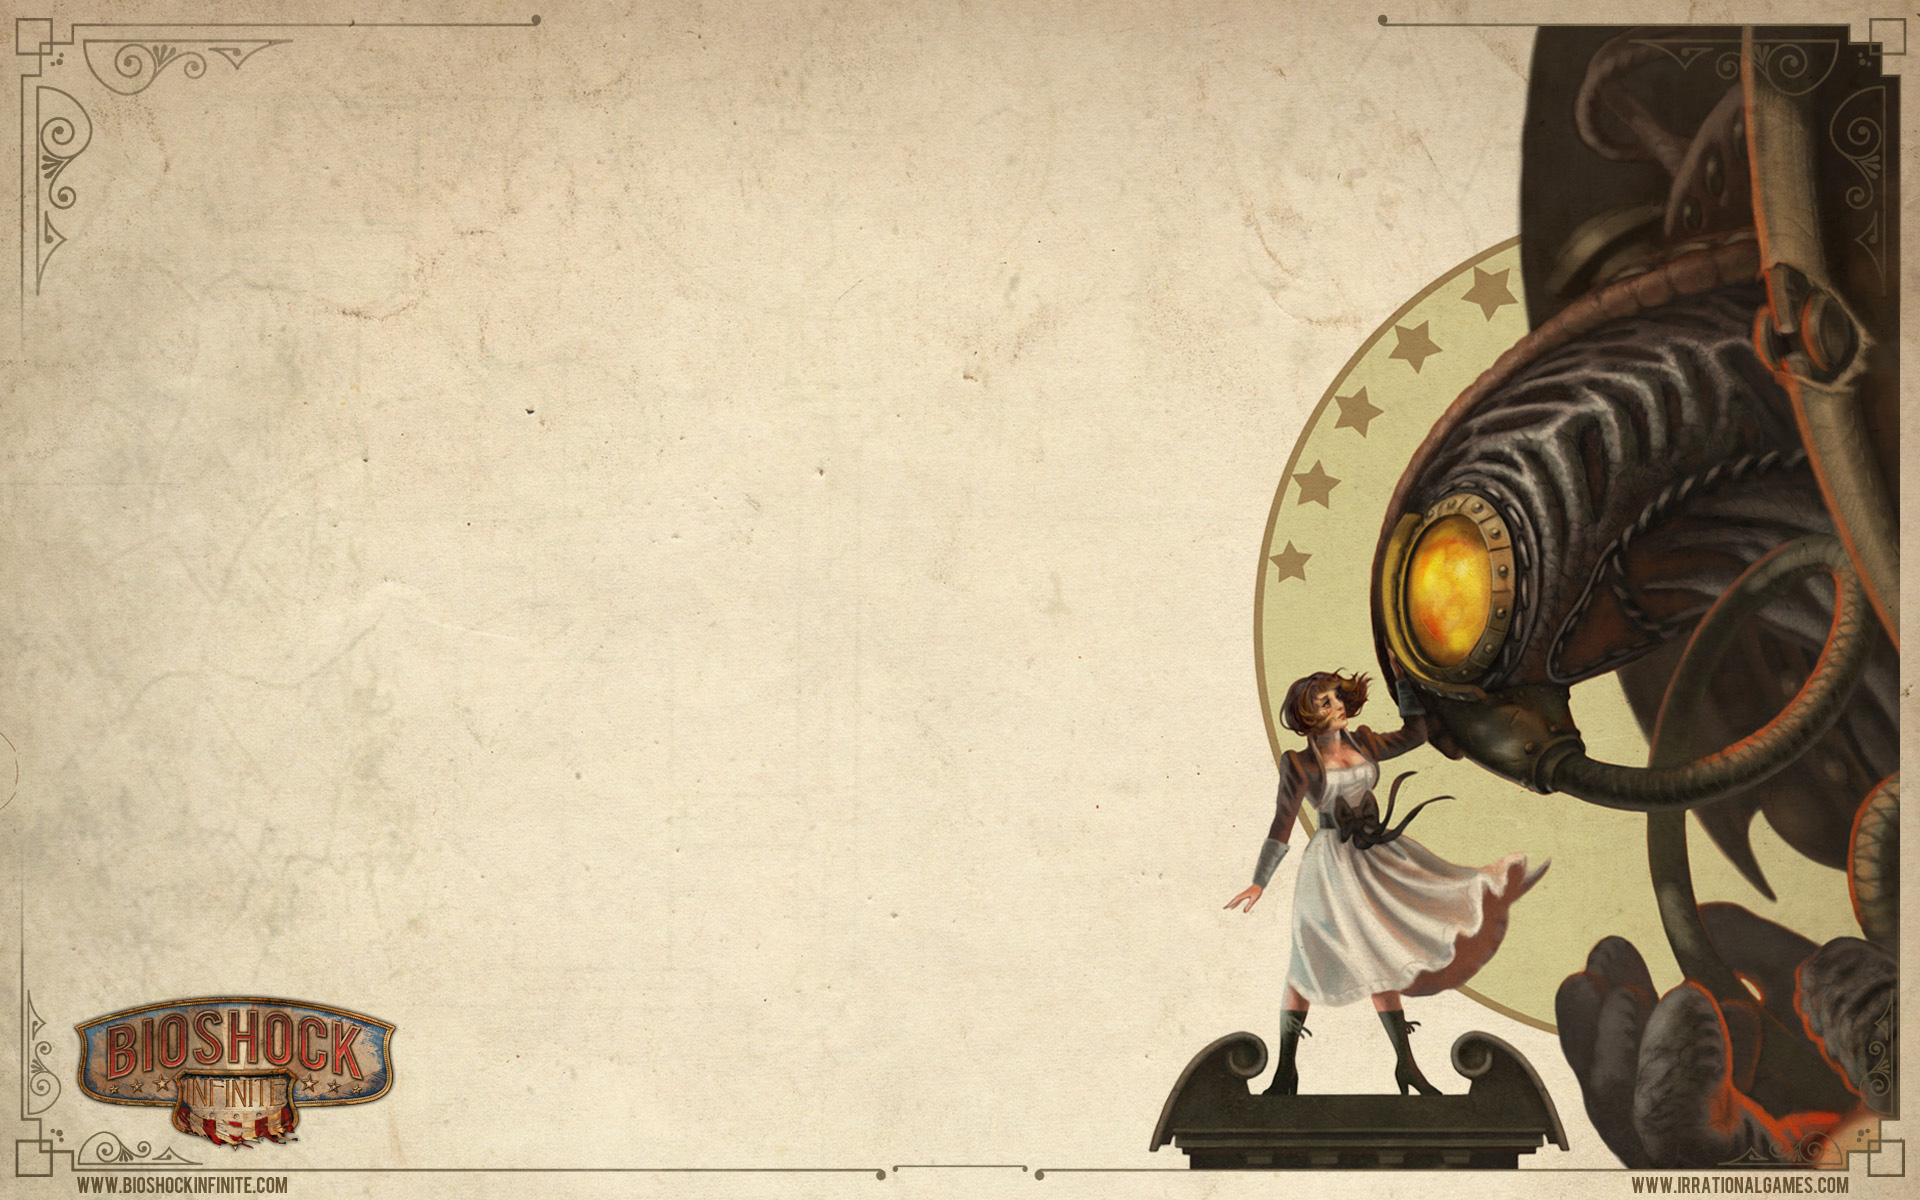 Free Bioshock Infinite Wallpaper in 1920x1200